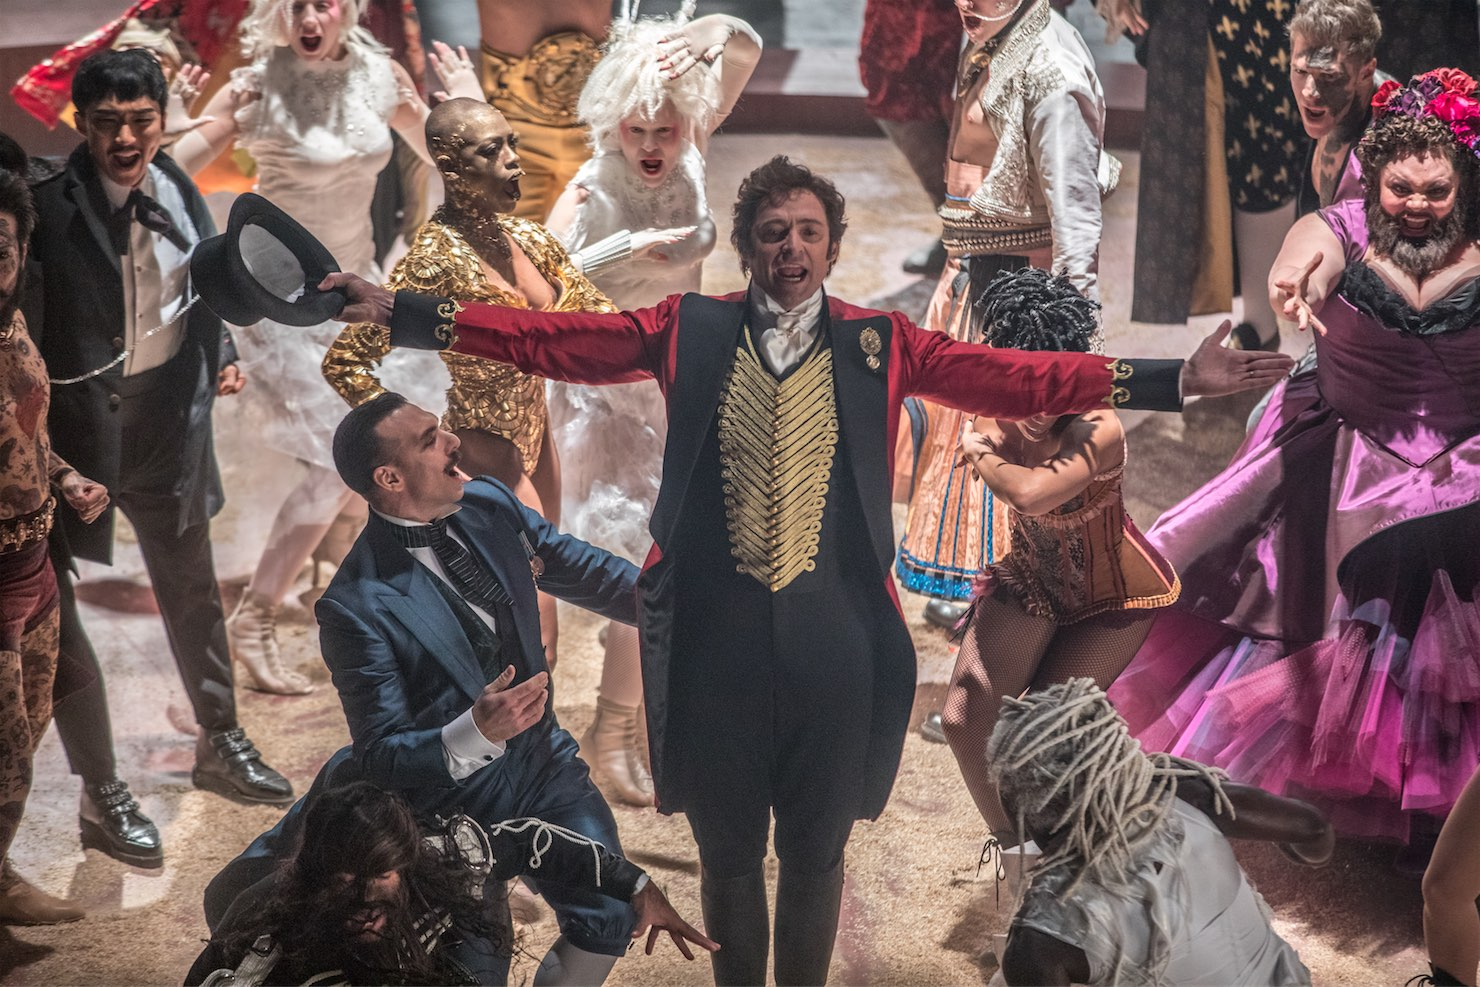 Twentieth Century Fox has today revealed a brand-new trailer for The Greatest Showman featuring the soaring track This Is Me and brand new footage